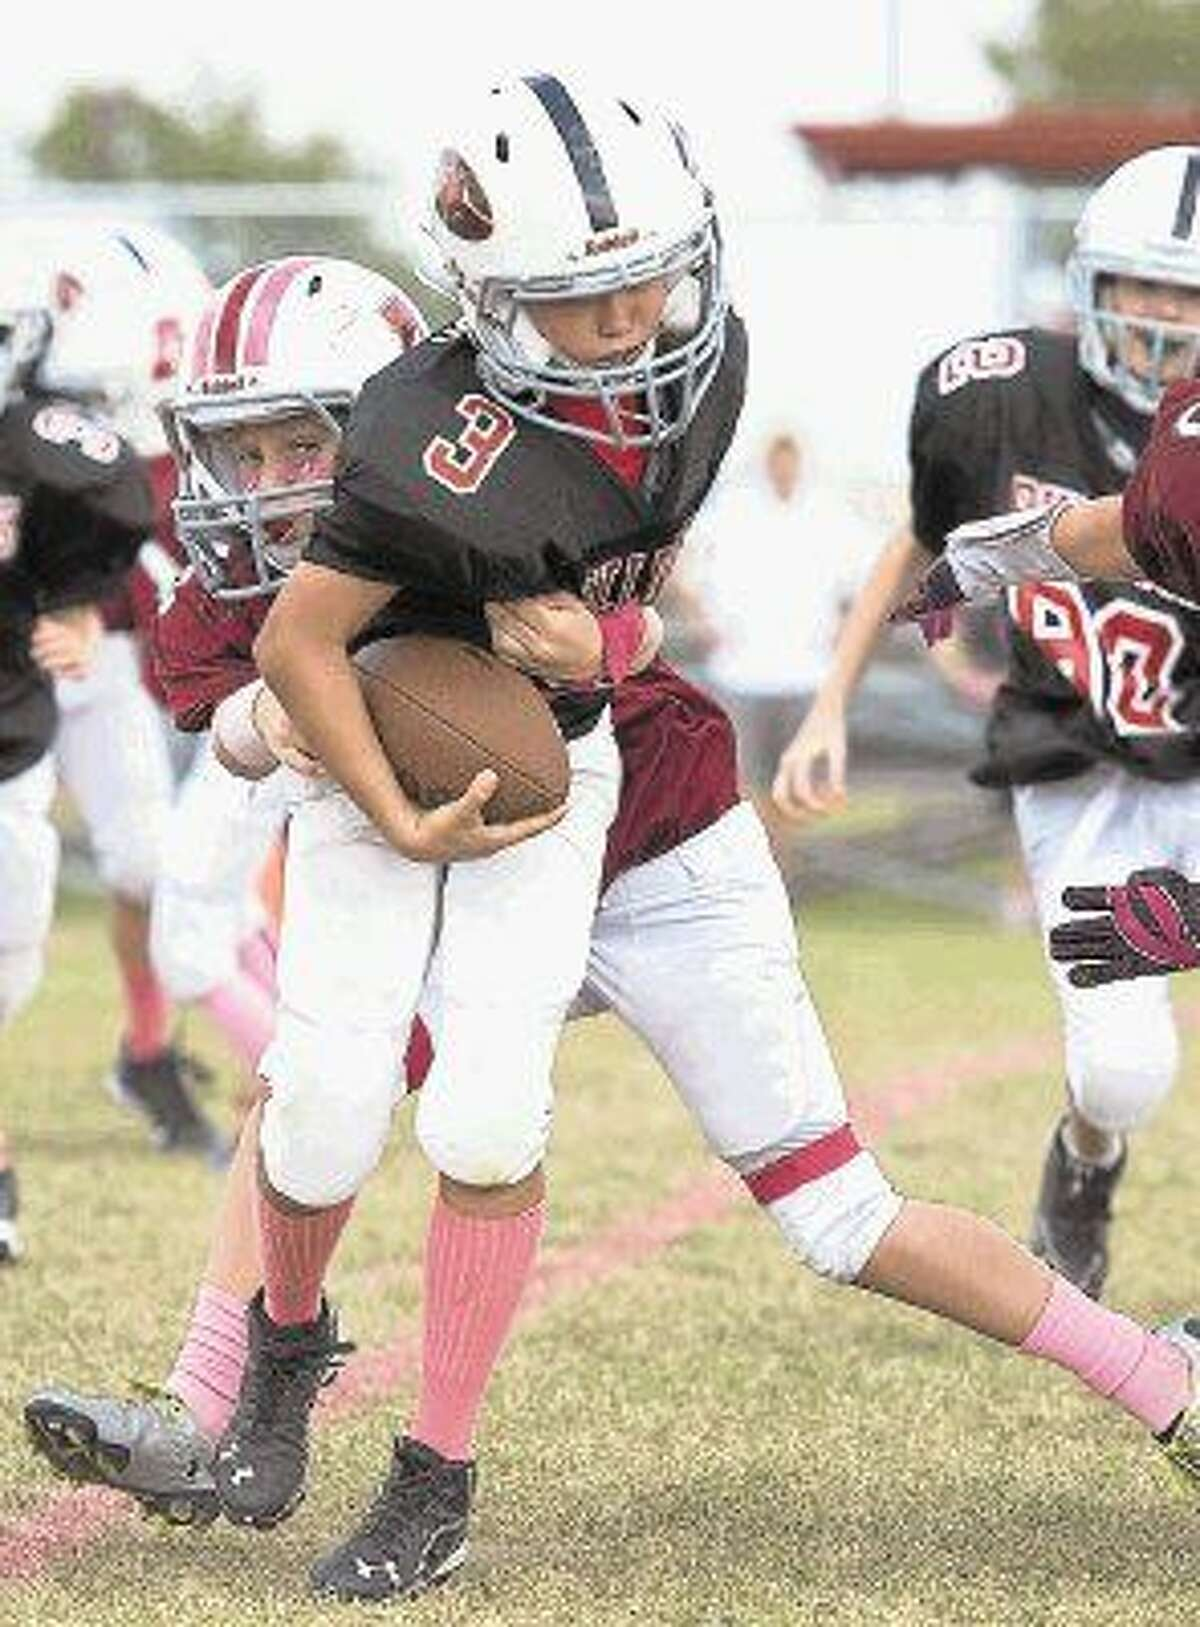 For the past couple of seasons, the Southwest Football League youth football players have wore pink accessories for its annual Pink One: Tackle Cancer event to raise awareness for breast cancer and those the disease affects. The SFL is one of many teams in the Examiner area that will remember breast cancer victims over the next month by wearing pink on the field of play.